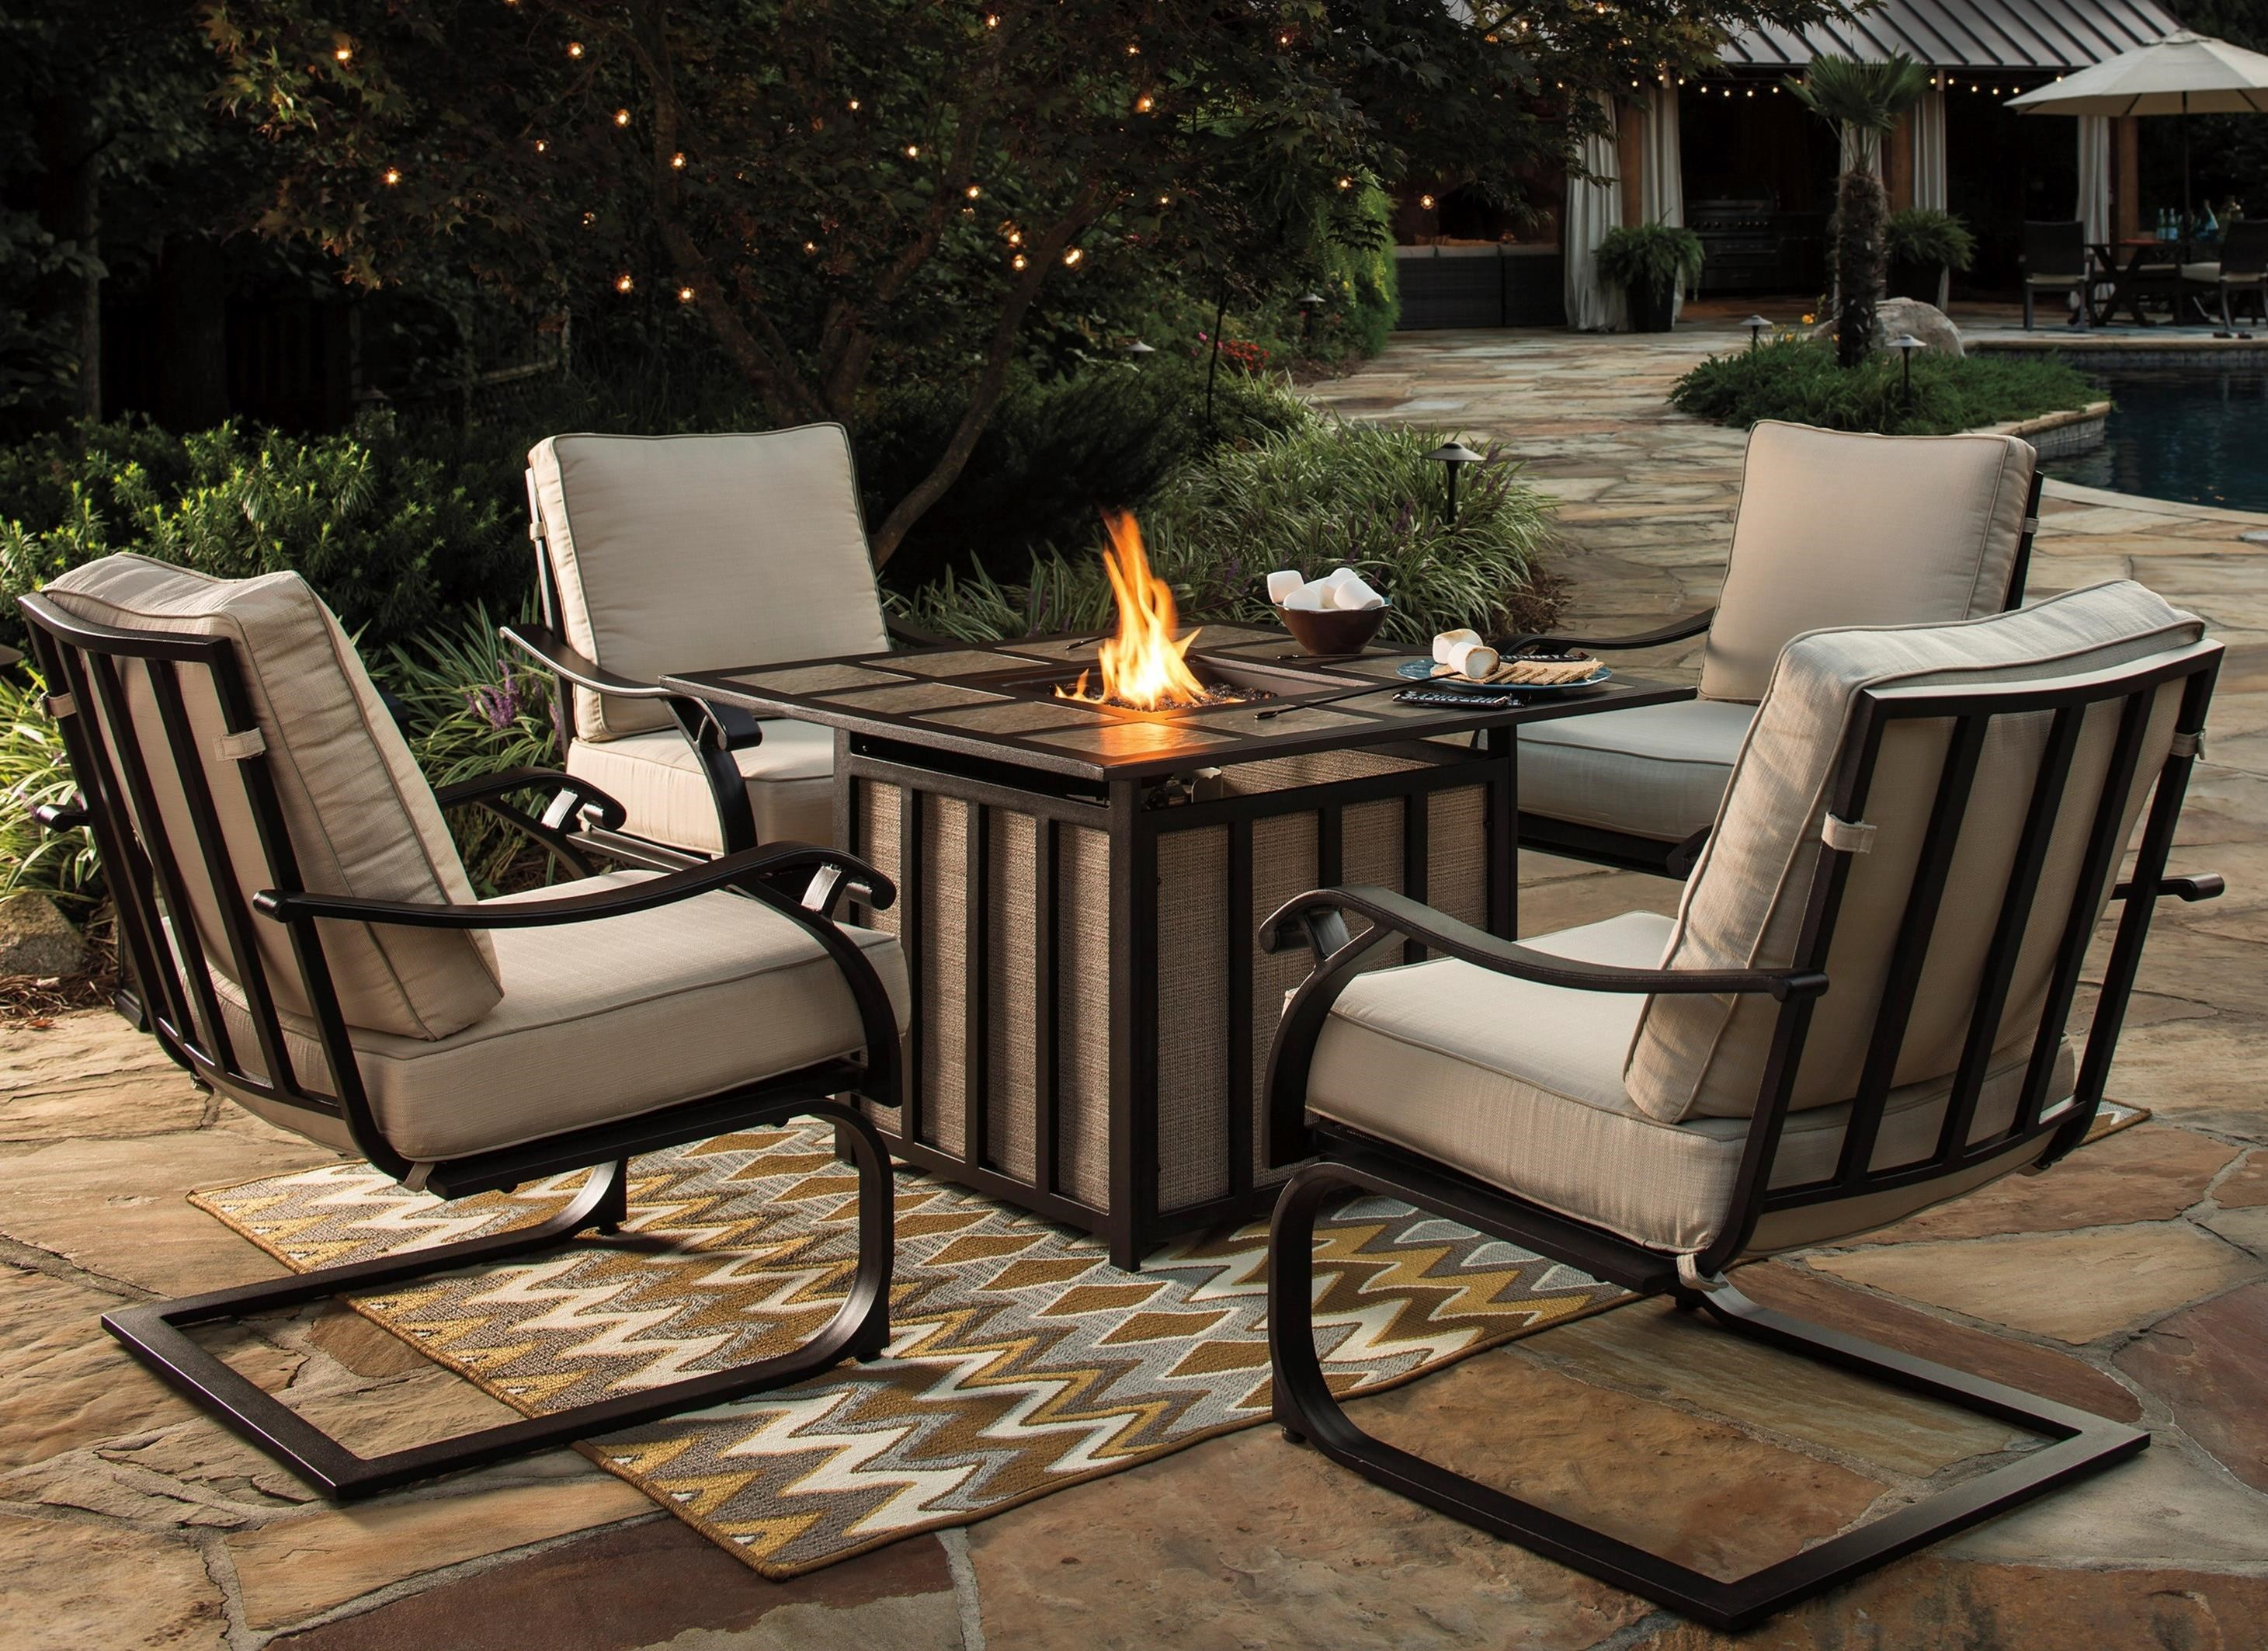 Signature Design By Ashley Wandon Outdoor 5 Piece Fire Pit Table Set   John  V Schultz Furniture   Outdoor Conversation Sets/Outdoor Chat Sets